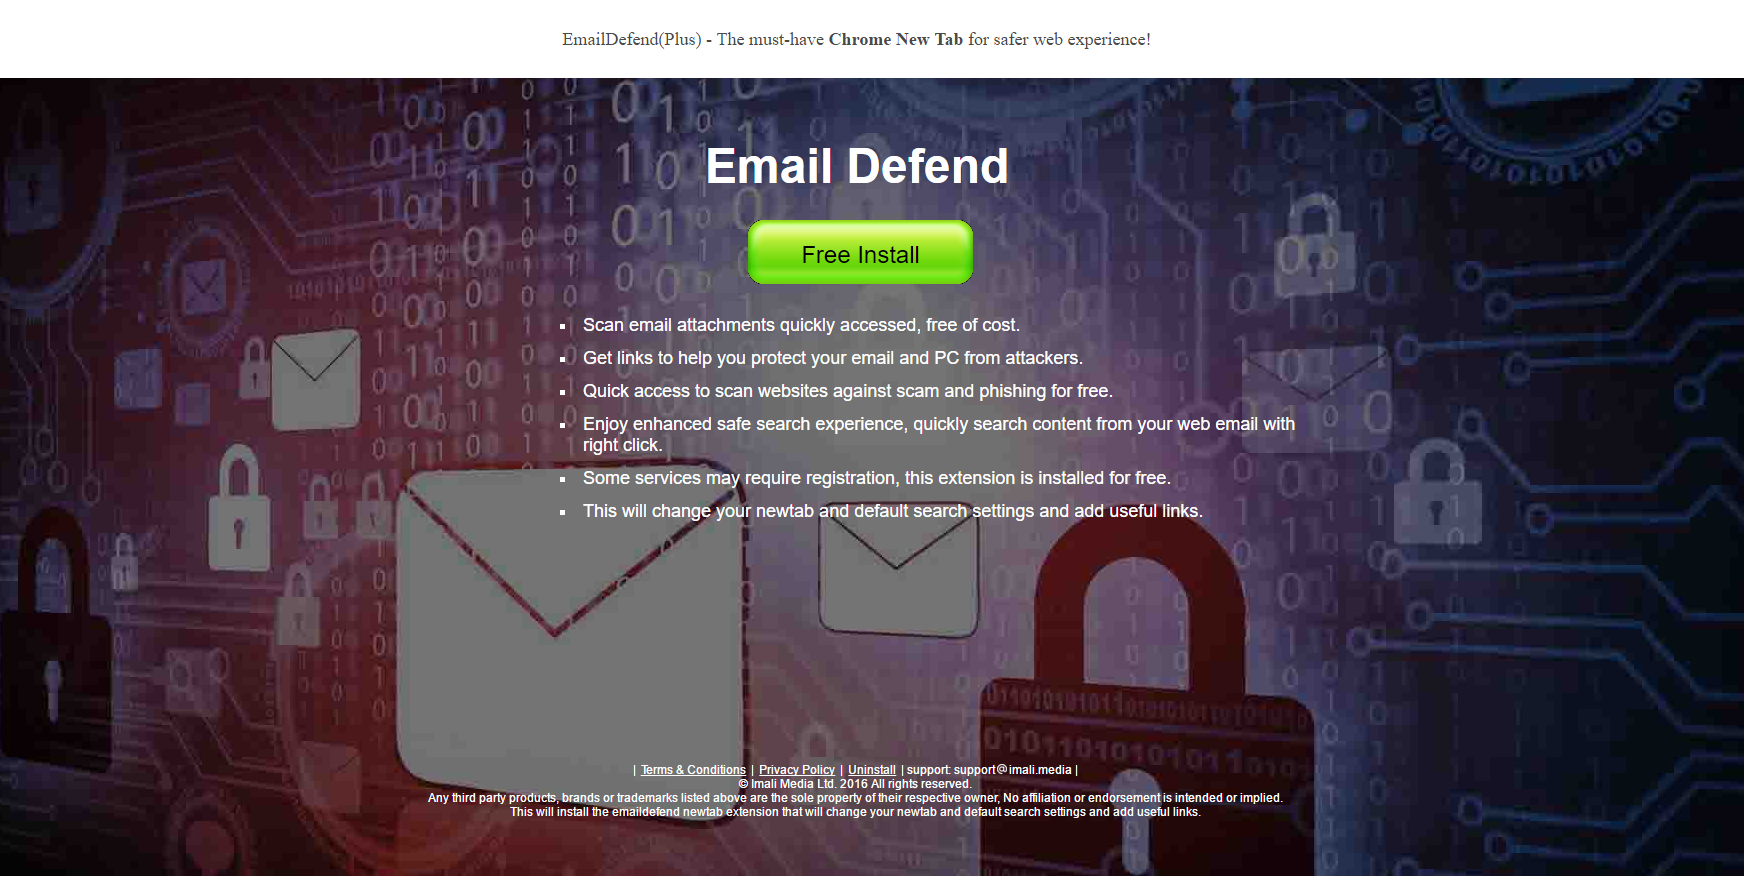 Email Defend Ads